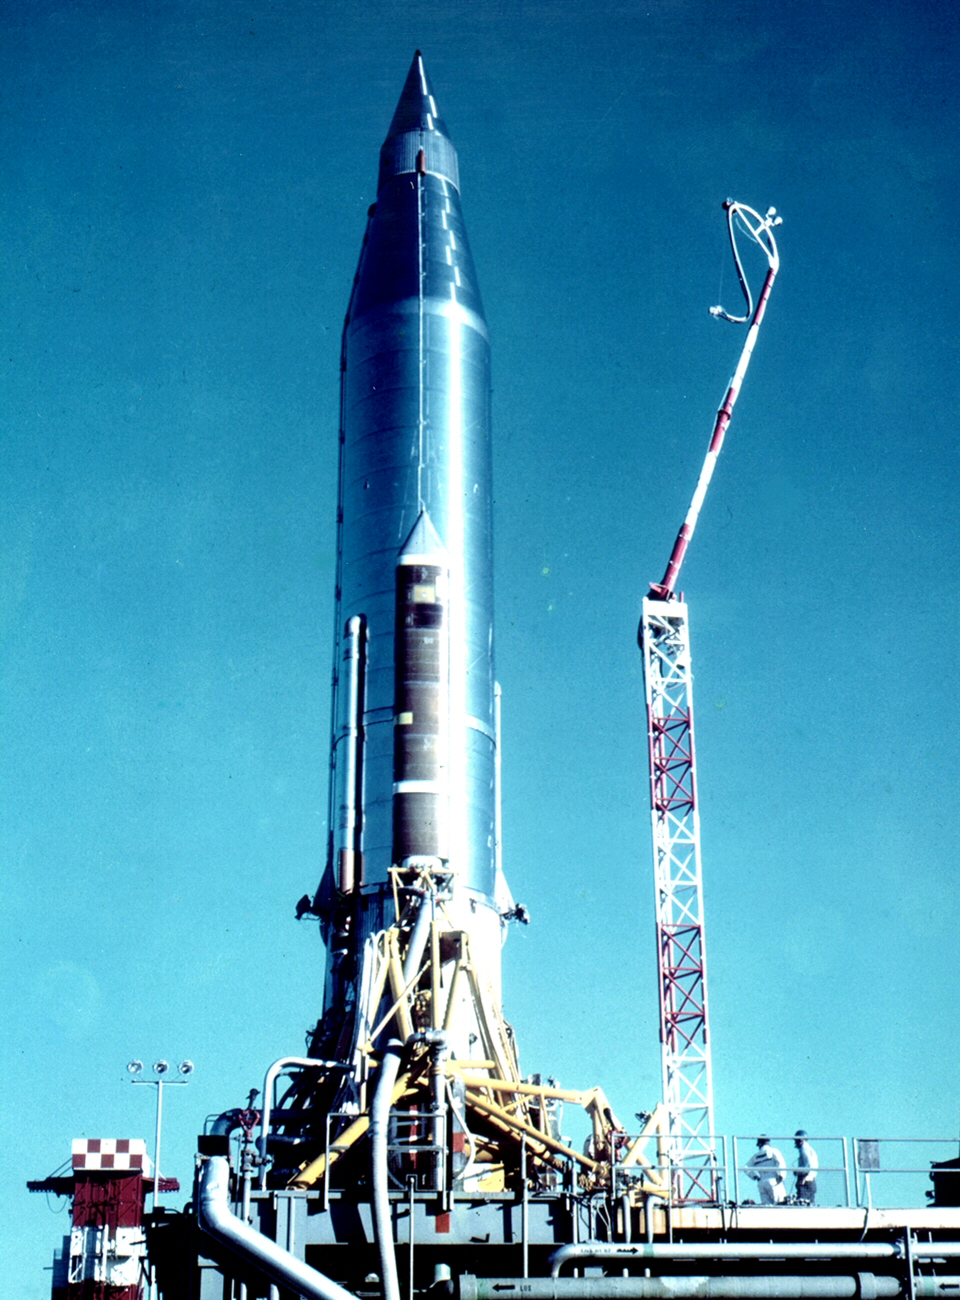 http://upload.wikimedia.org/wikipedia/commons/0/09/Atlas-B_with_Score_payload.jpg